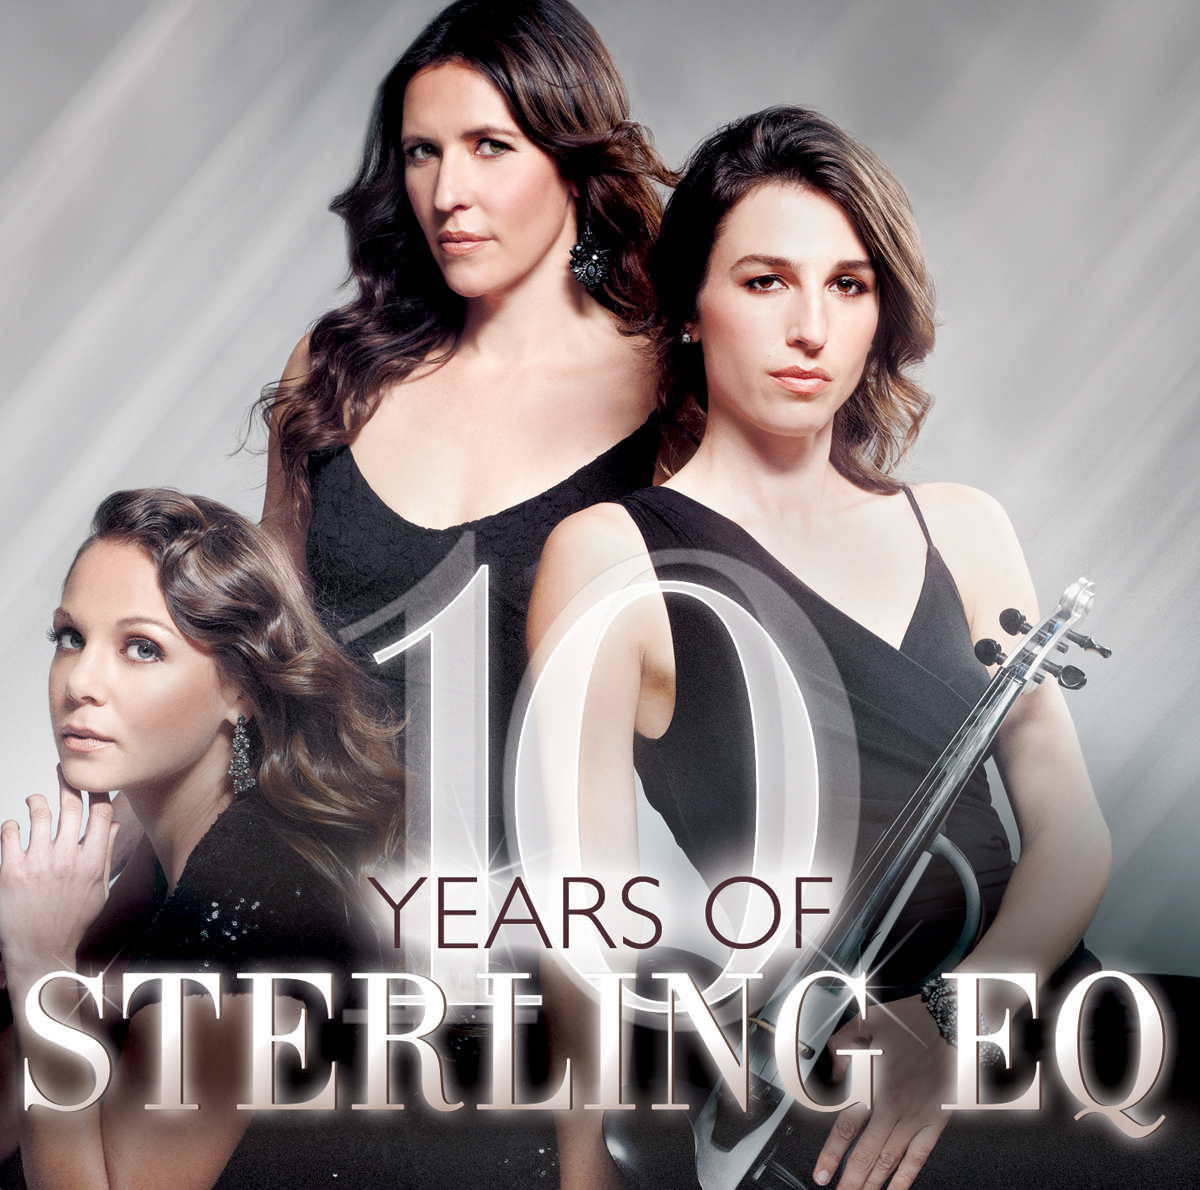 Celebrating 10 years of Sterling EQ